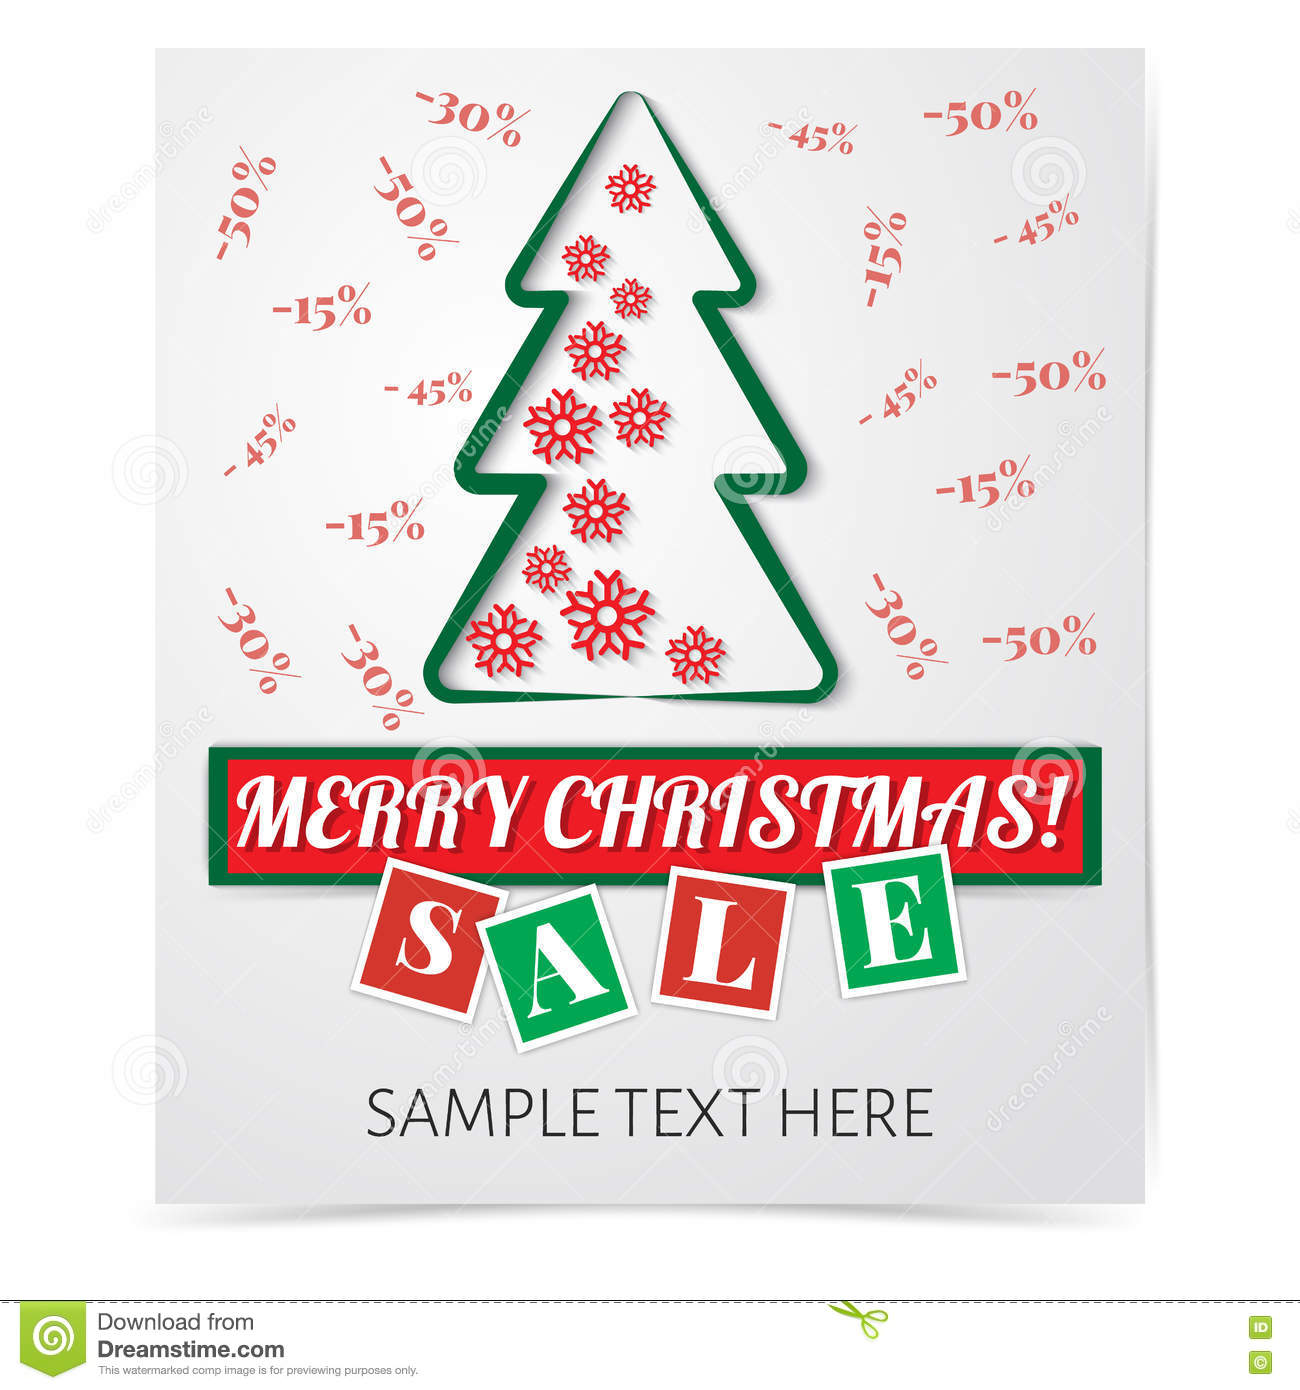 christmas flyer paper cut style discount stock vector christmas flyer paper cut style discount